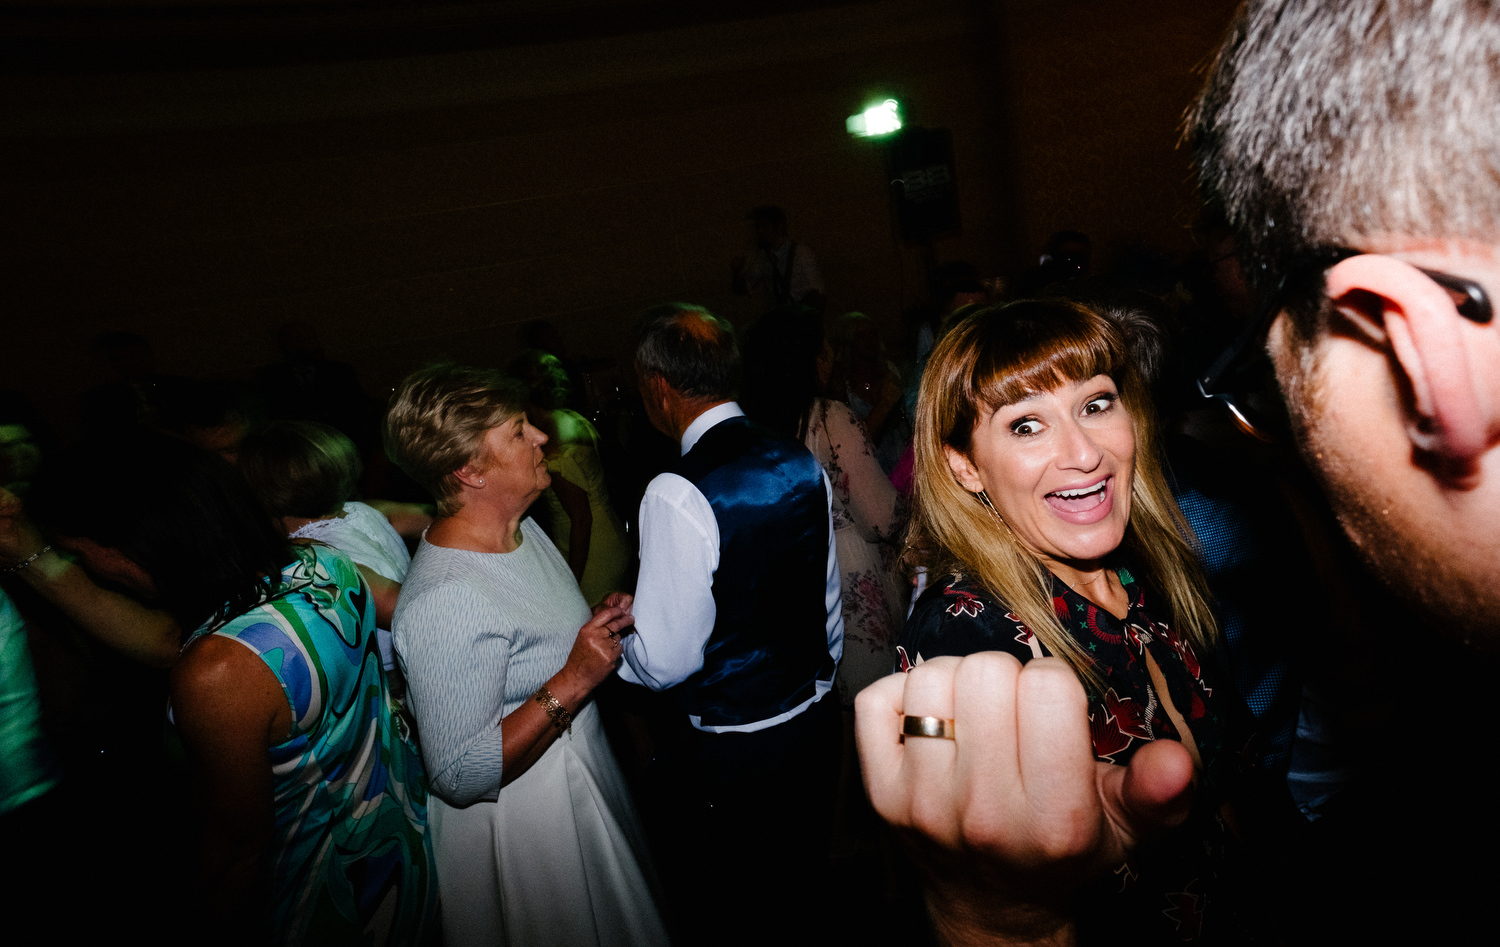 dmp0692_photographer_wedding_dublin_david_mcclelland_candid_photography_fujifilm_shelbourne_reception_documentary